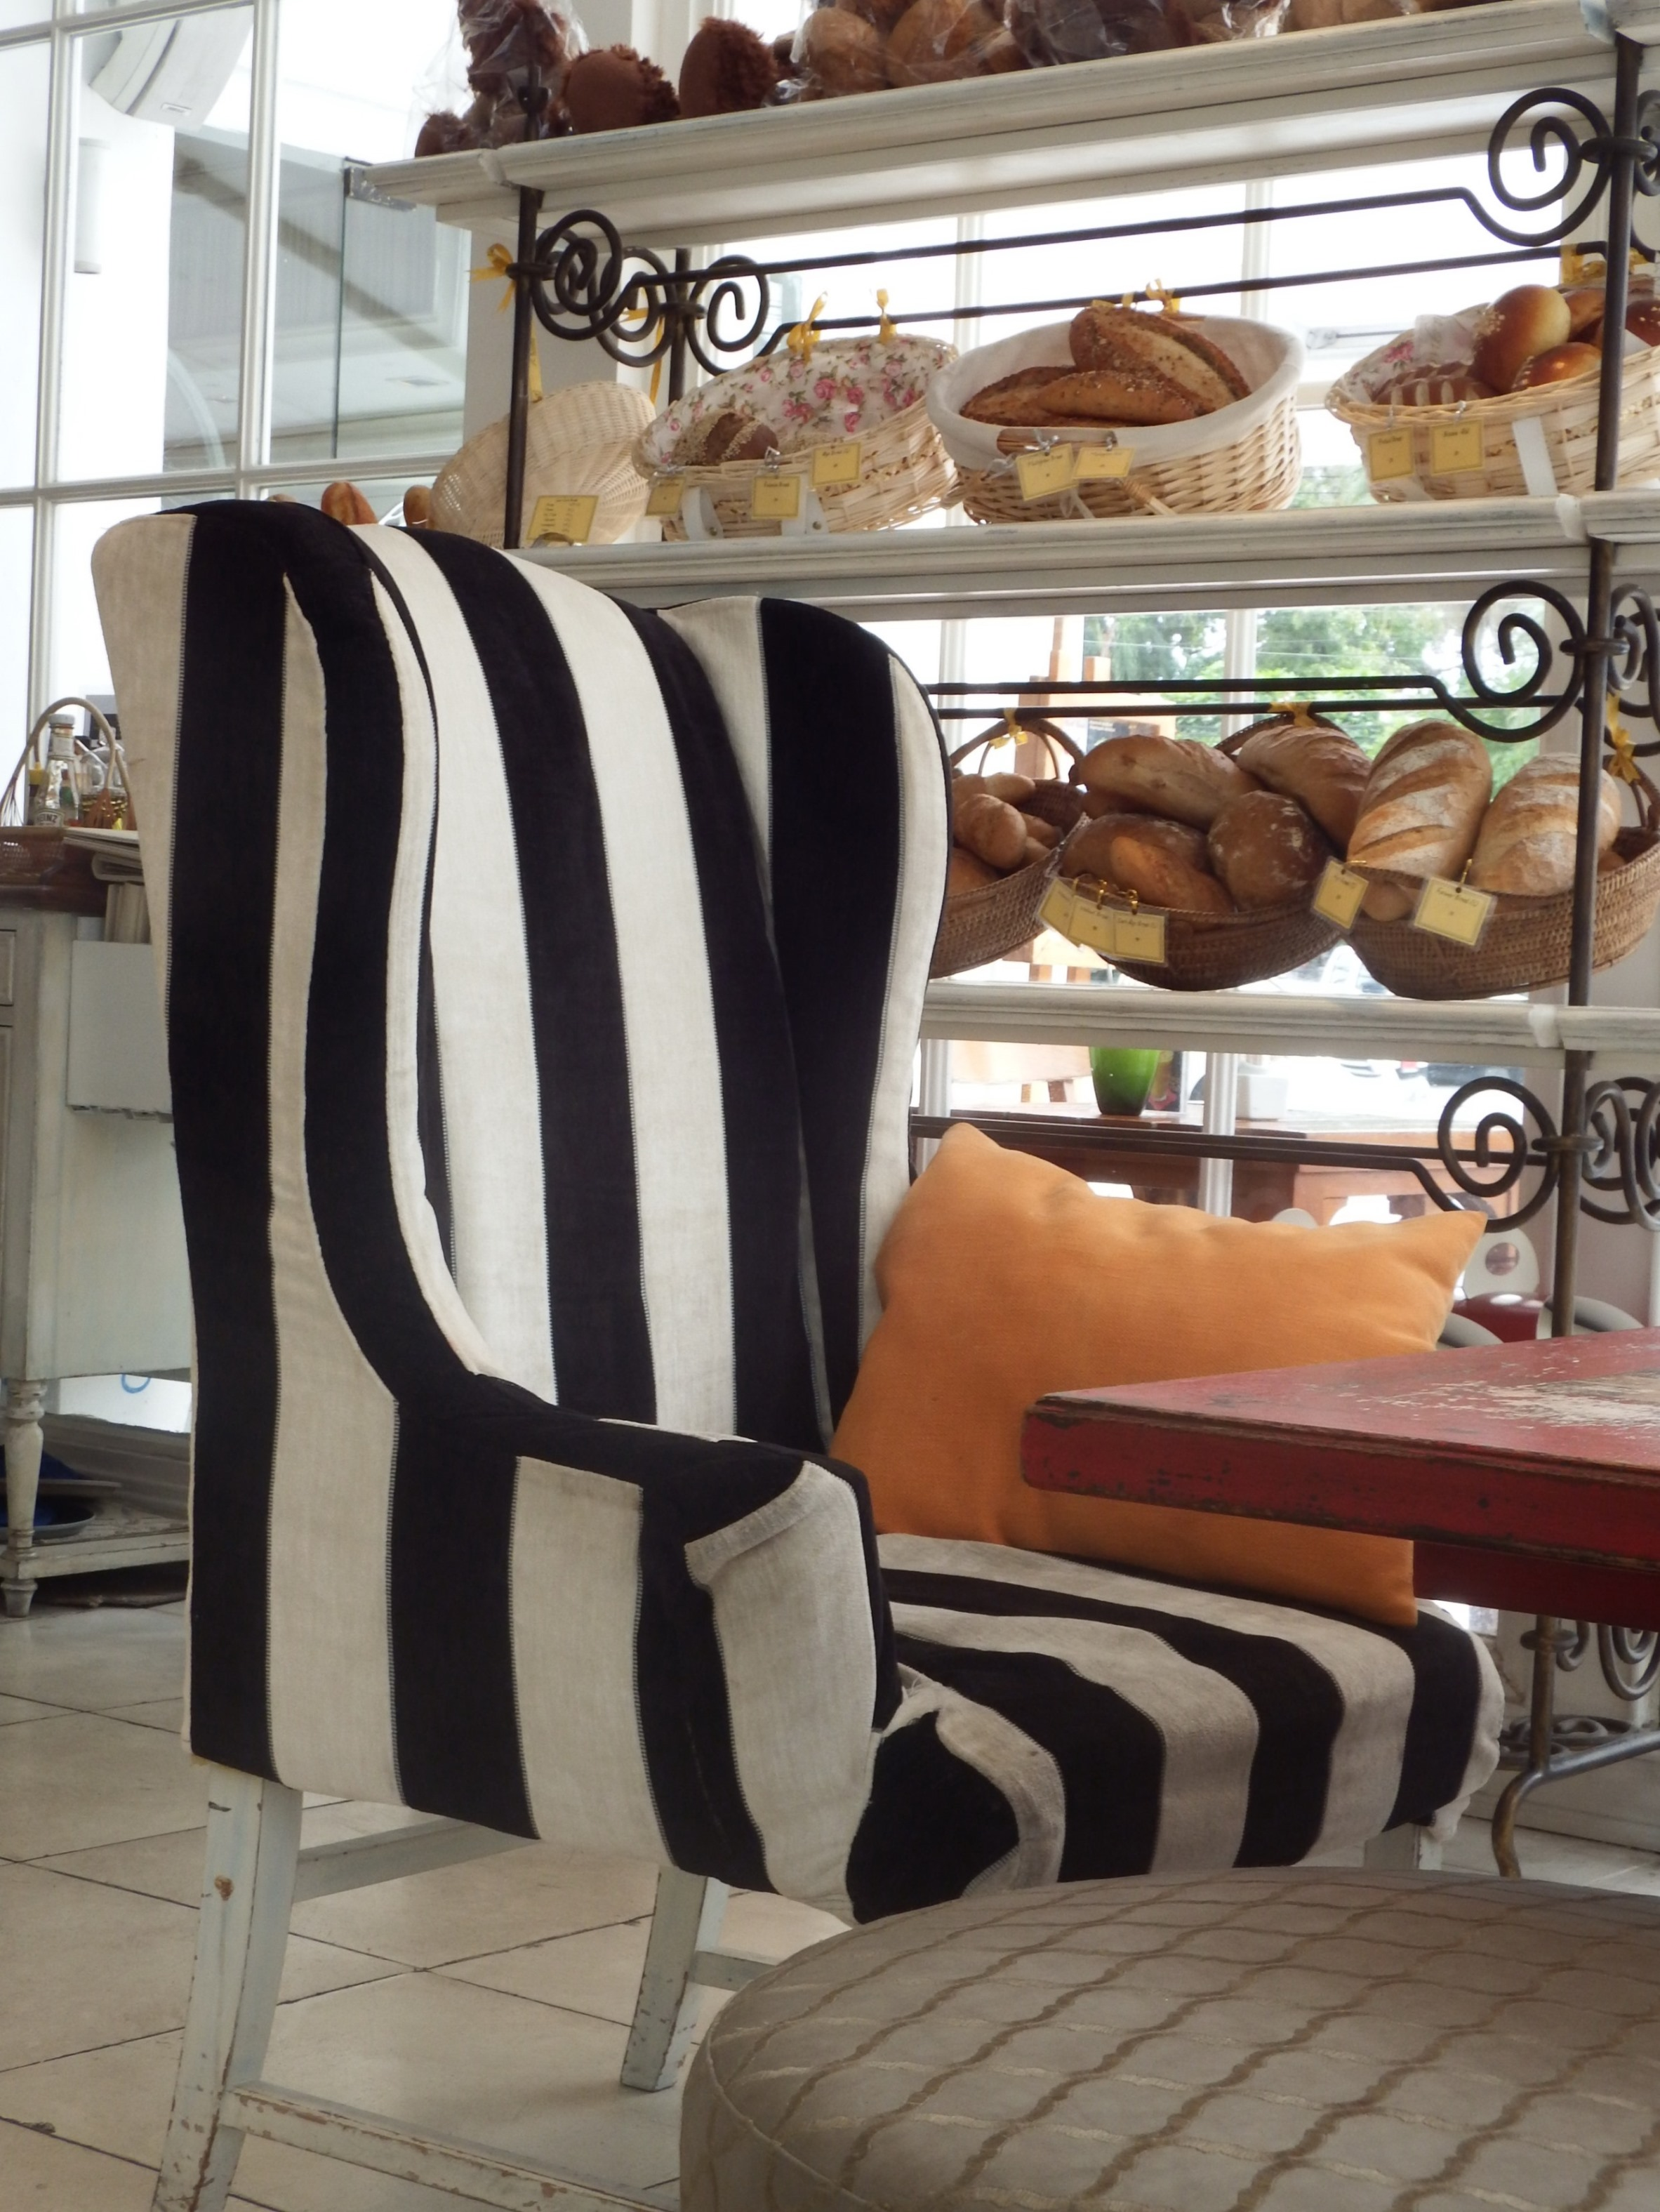 Bakery Cafe with Striped Black and White, And, Rooms, House, Interior, HQ Photo